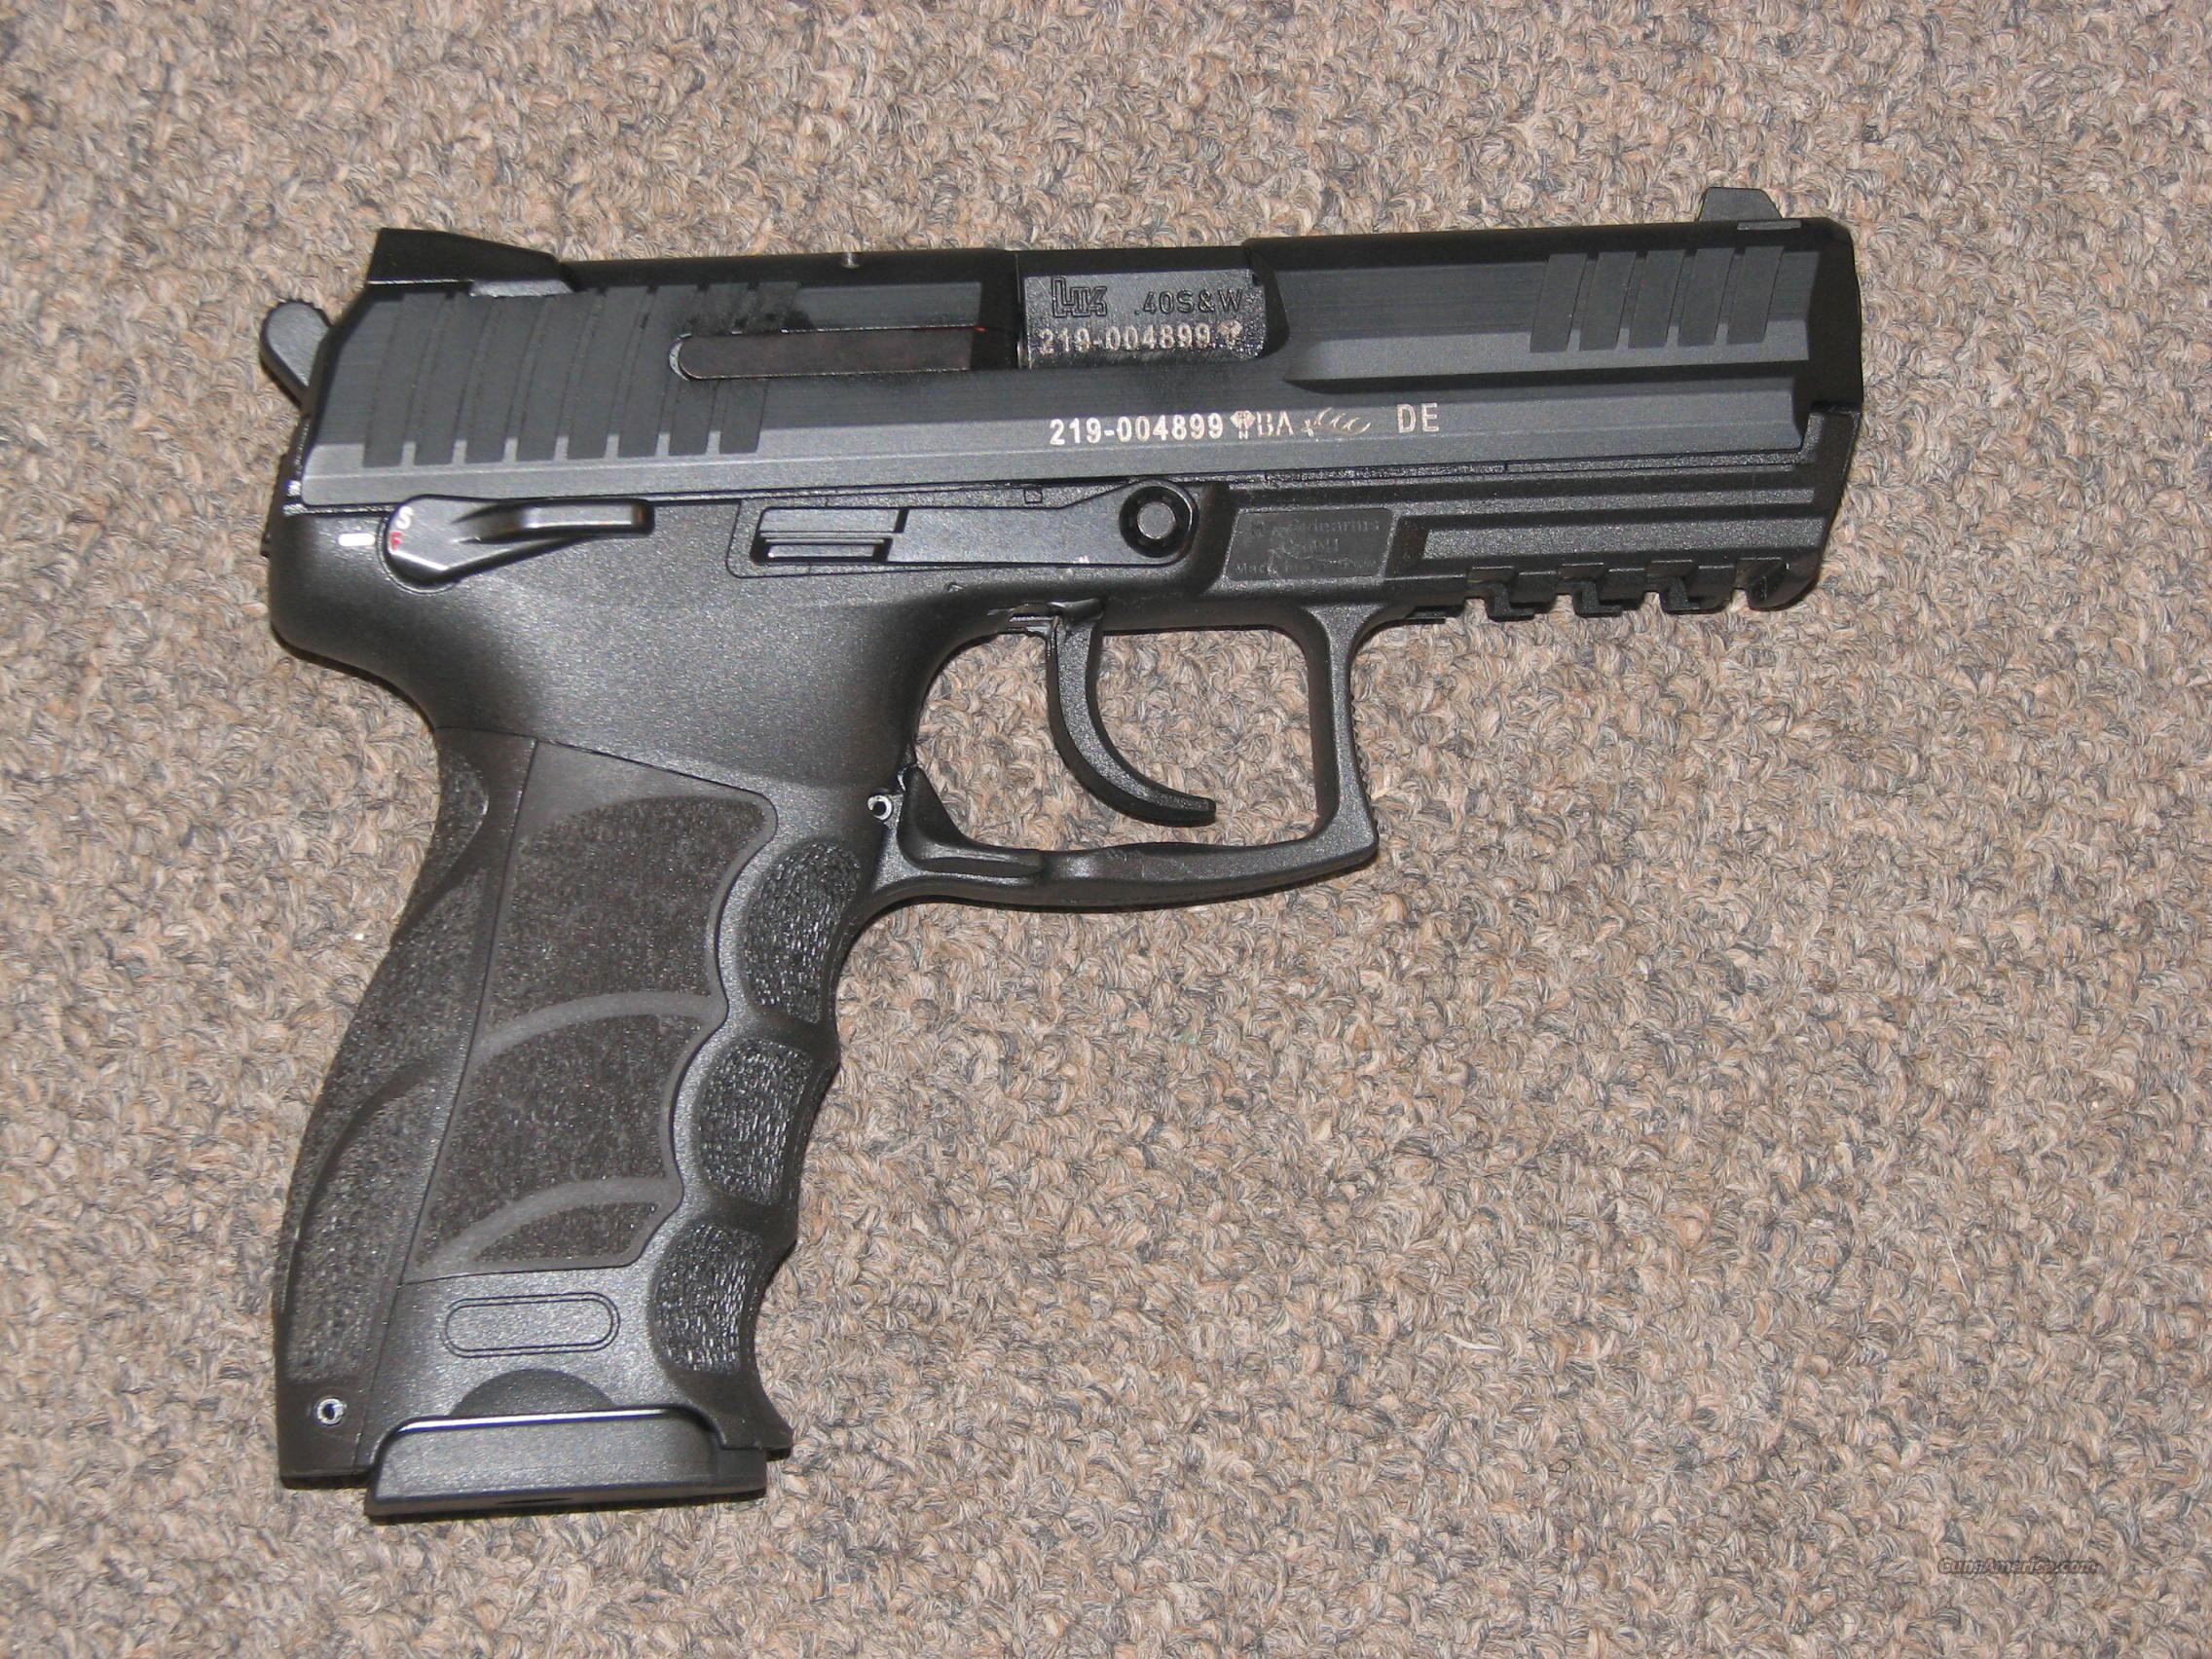 HECKLER & KOCH P30 .40 S&W w/ SAFETY - NEW!  Guns > Pistols > Heckler & Koch Pistols > Polymer Frame